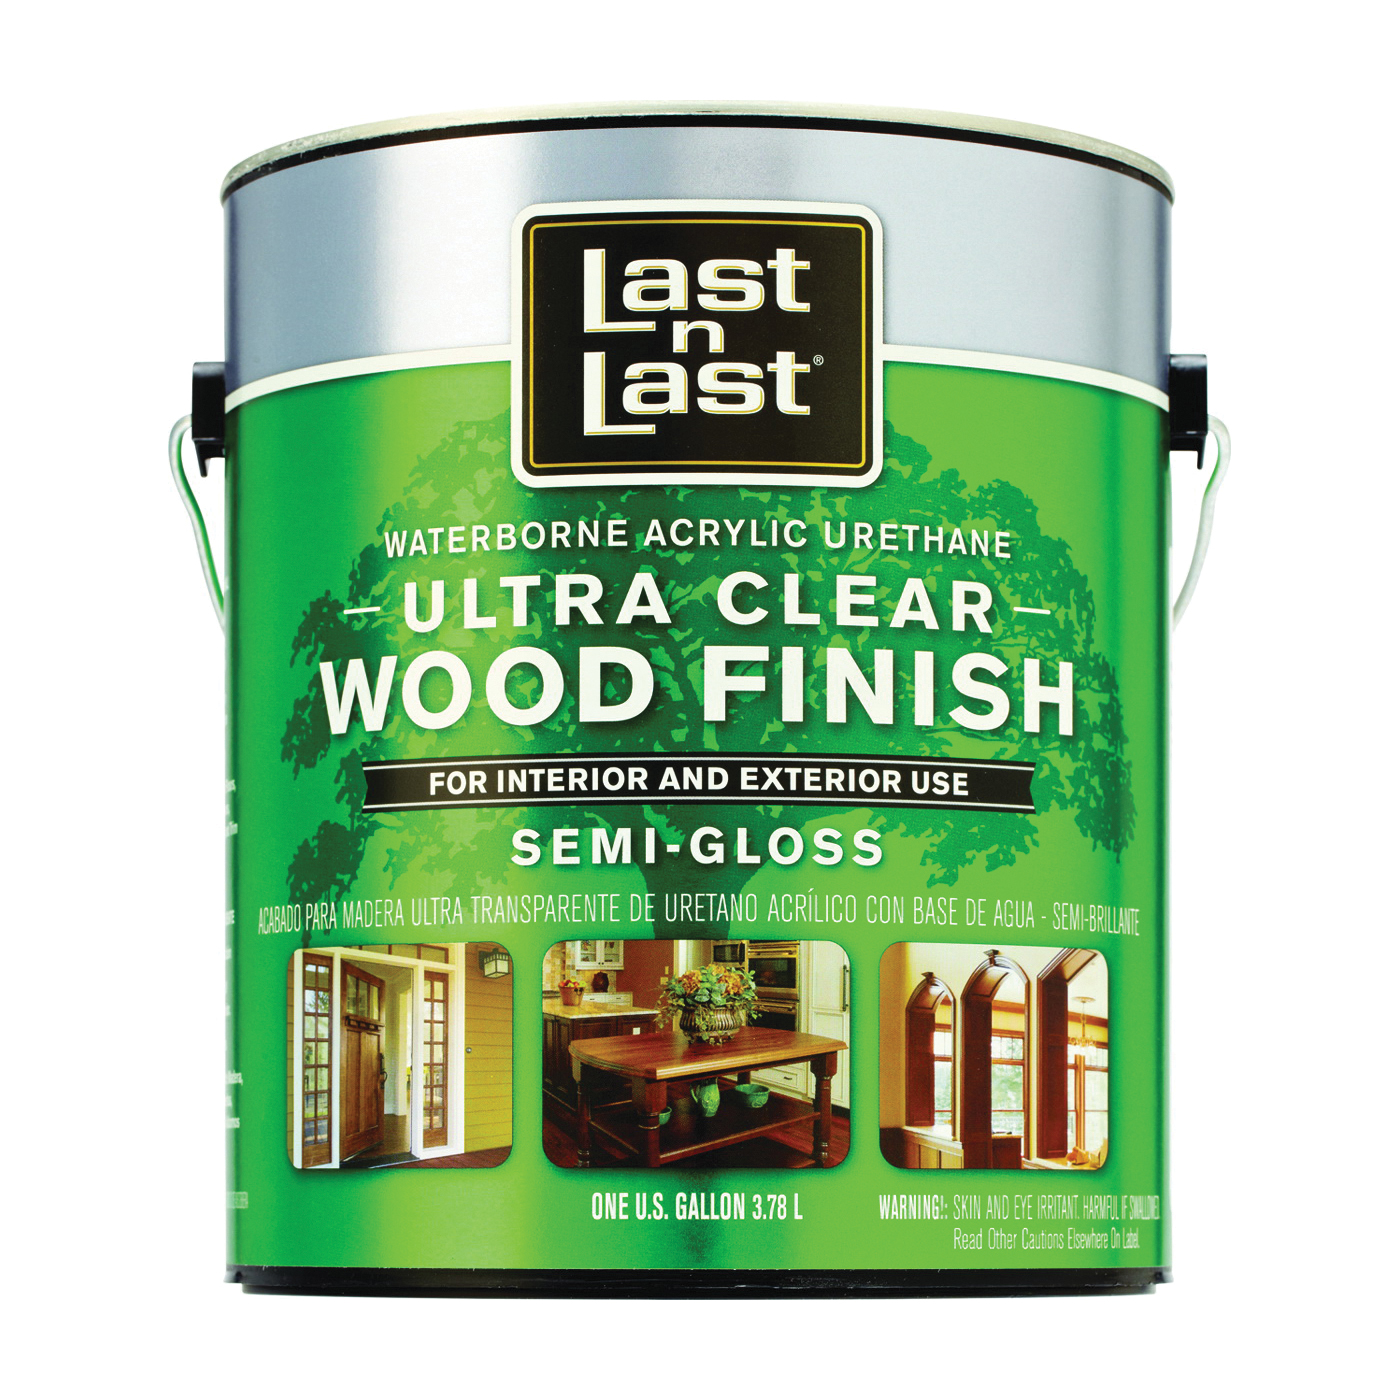 Picture of Last n Last 14001 Ultra Clear Wood Finish, Semi-Gloss, Liquid, Ultra Clear, 1 gal, Can